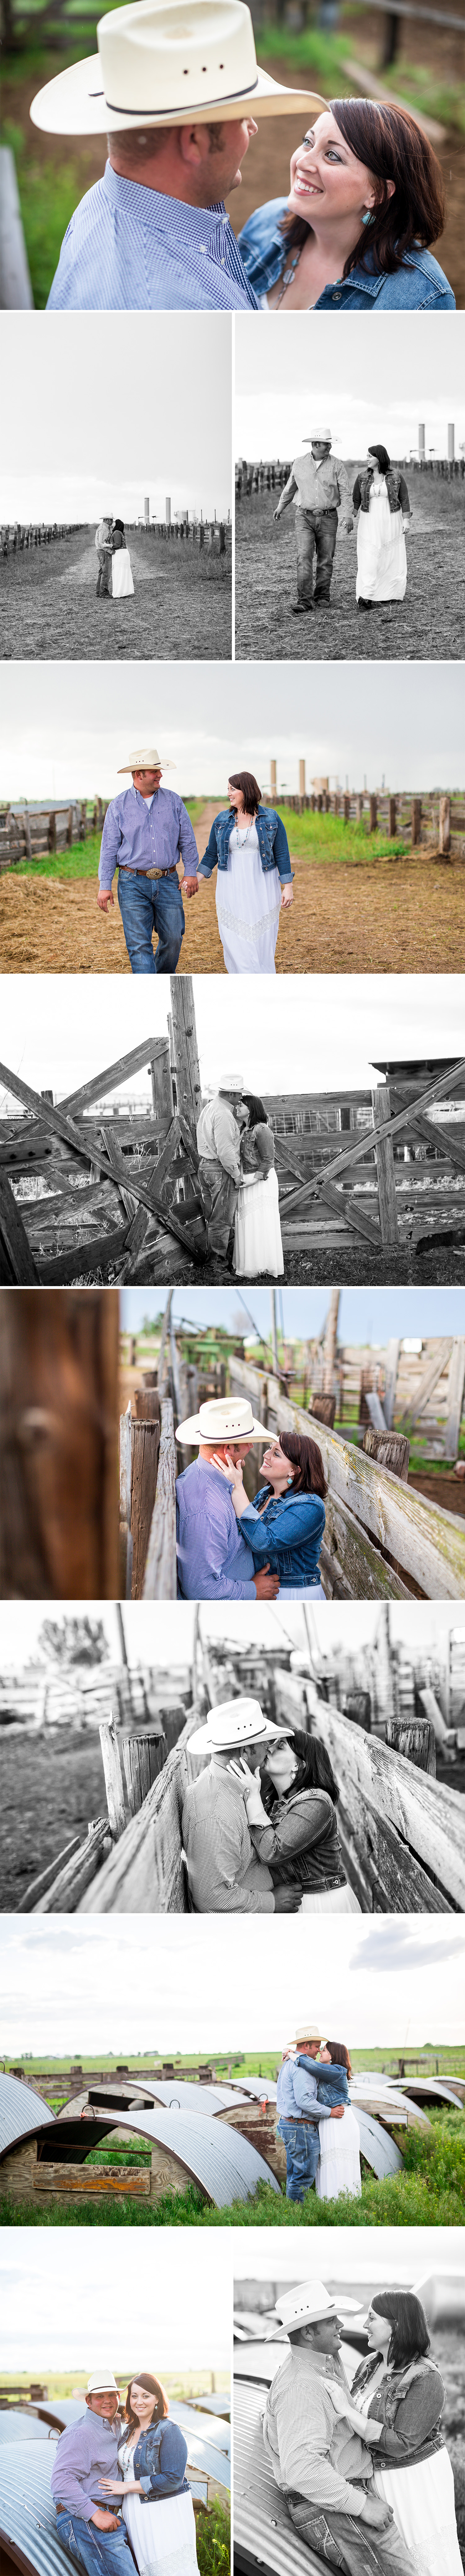 1 Fort Collins Engagement Photography.jpg